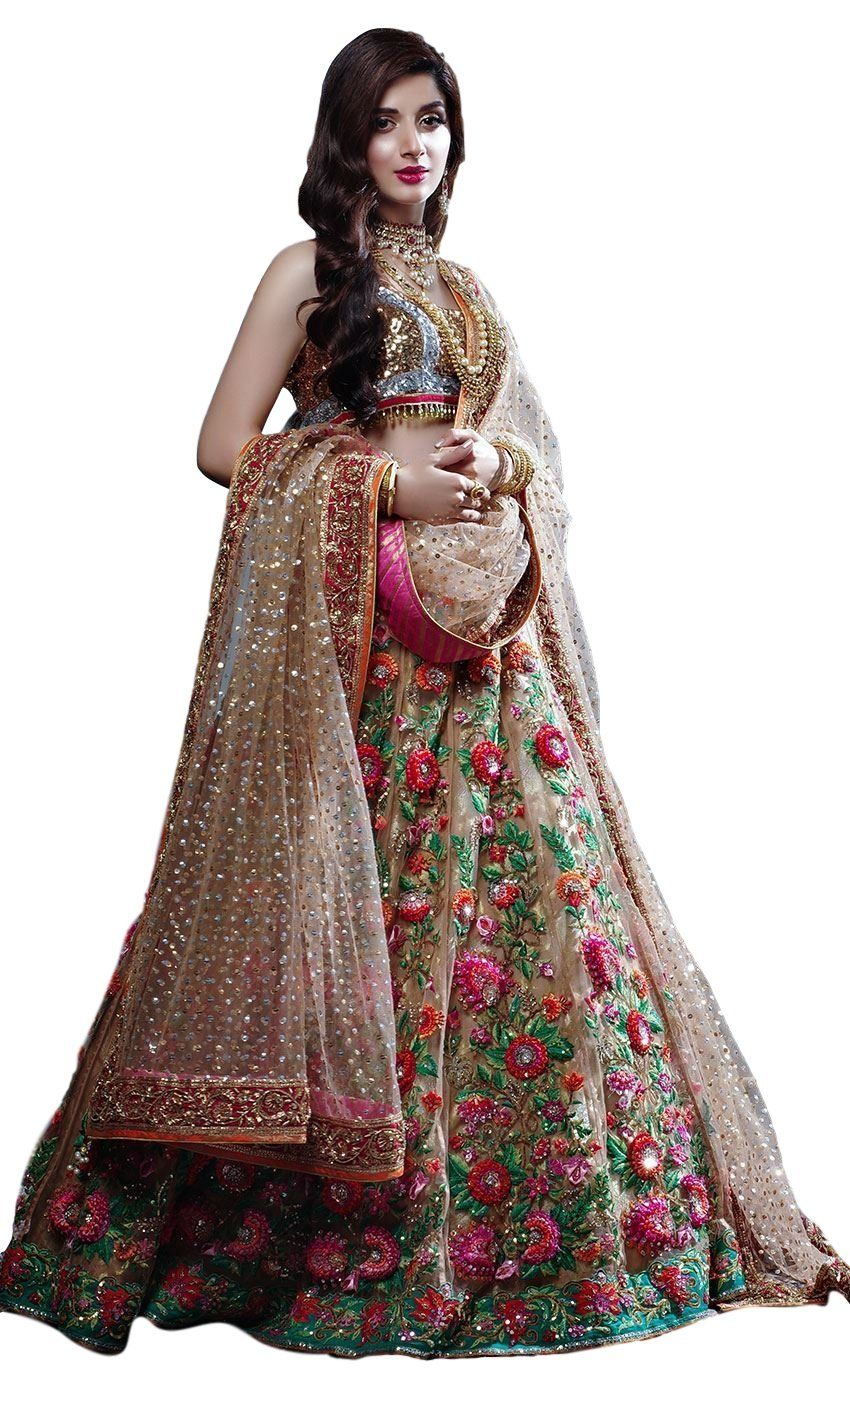 fb56ec2d01313f Champagne Color Wedding Lehenga with Floral Embroidery by Panache Haute  Couture